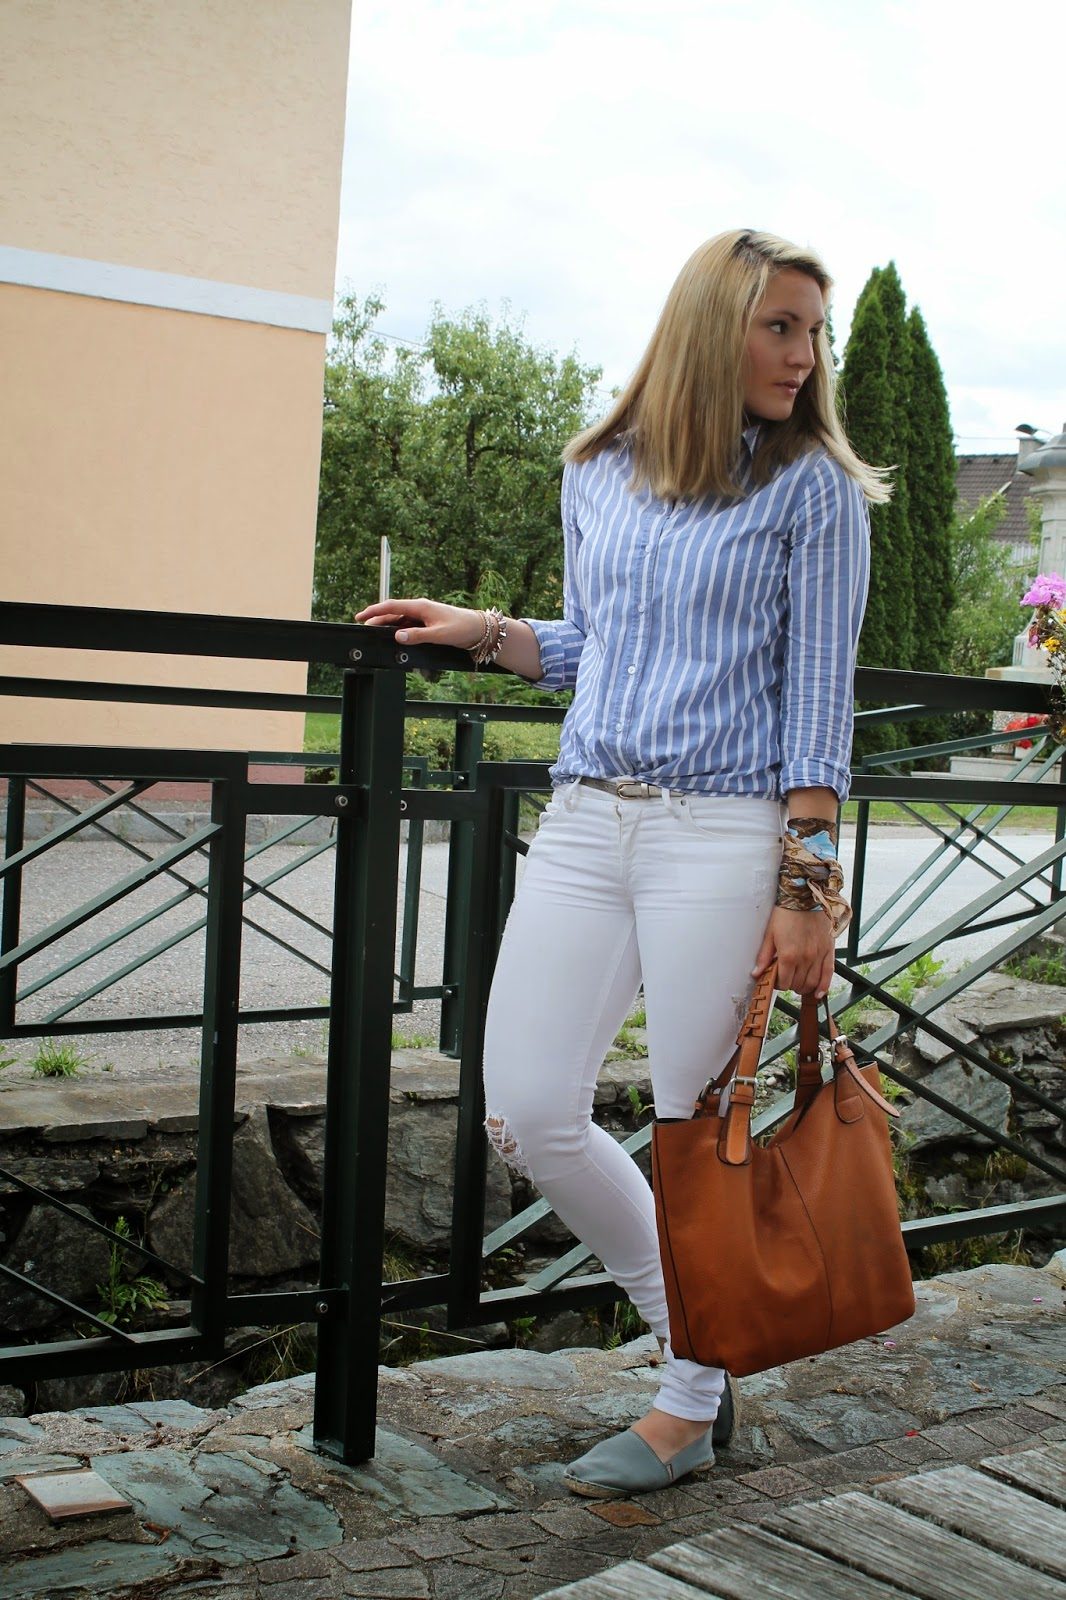 Fashionblogger Austria / Österreich / Deutsch / German / Kärnten / Carinthia / Klagenfurt / Köttmannsdorf / Spring Look / Classy / Edgy / Summer / Summer Style 2014 / Summer Look / Fashionista Look / H&M / Even and Odd / Mango / Espadrij / I Am / Statement Necklace / Stripped / White Jeans /